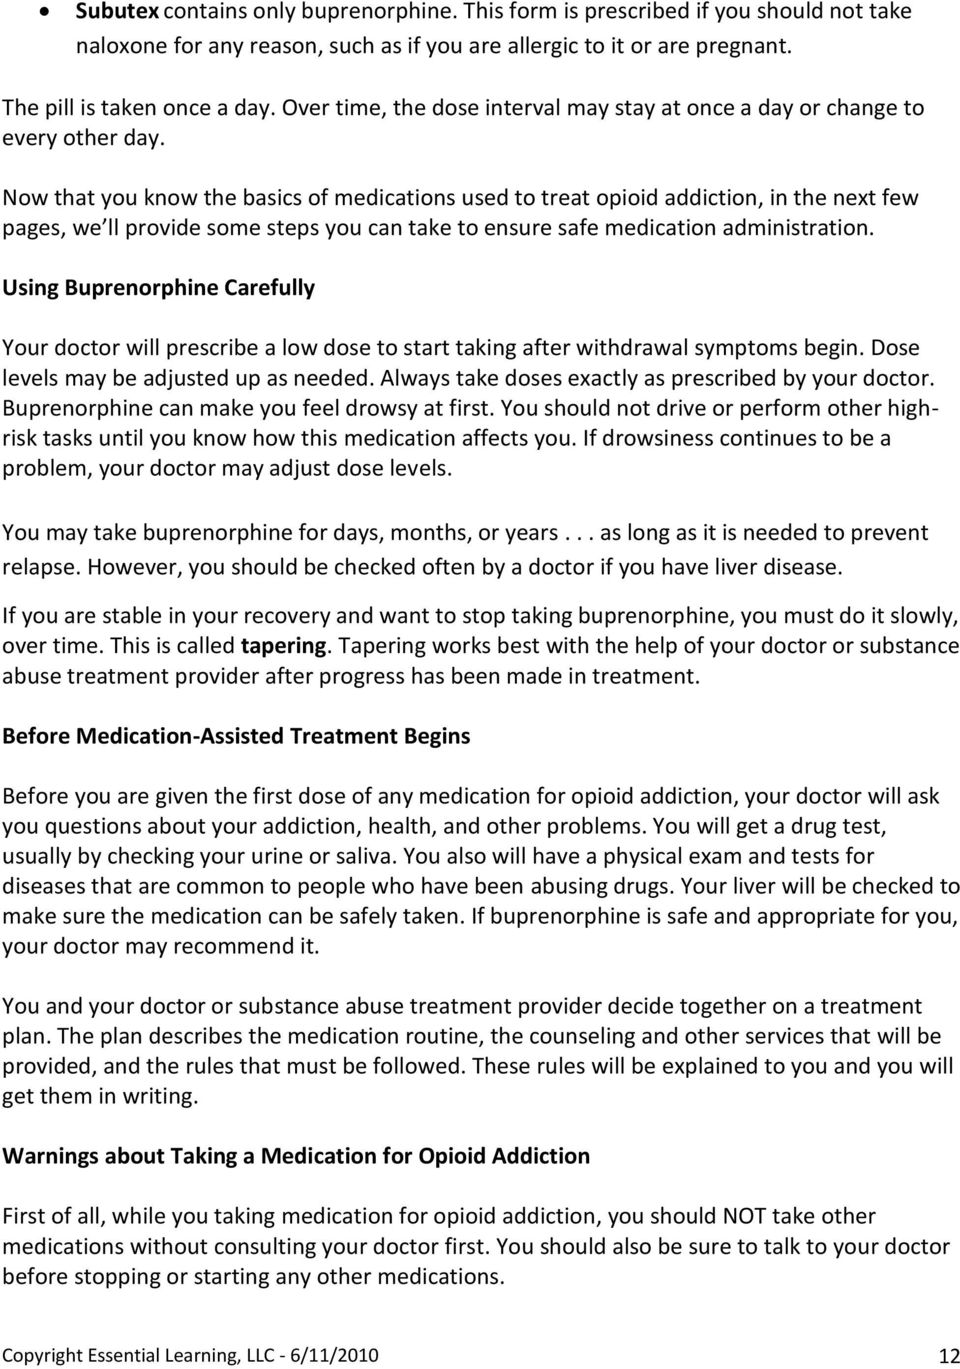 Now that you know the basics of medications used to treat opioid addiction, in the next few pages, we ll provide some steps you can take to ensure safe medication administration.